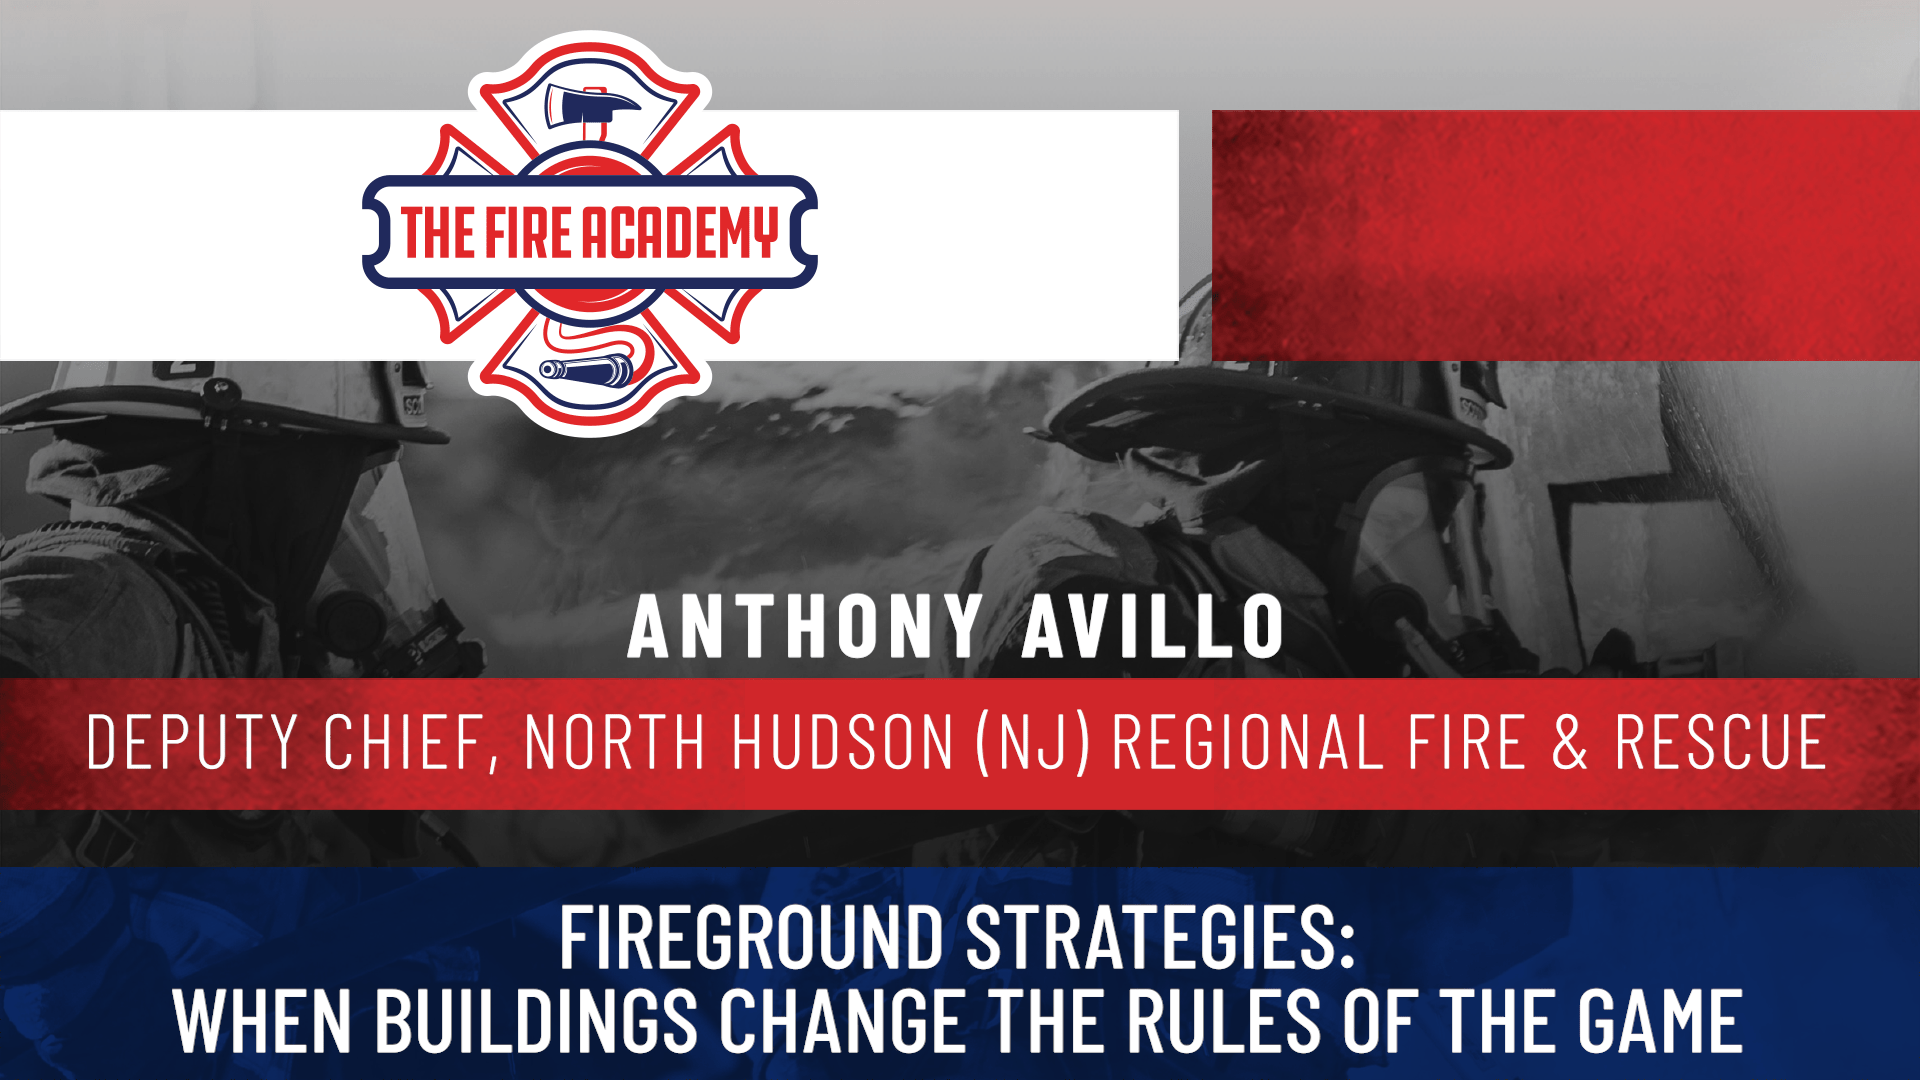 Fireground Strategies: When Buildings Change the Rules of the Game